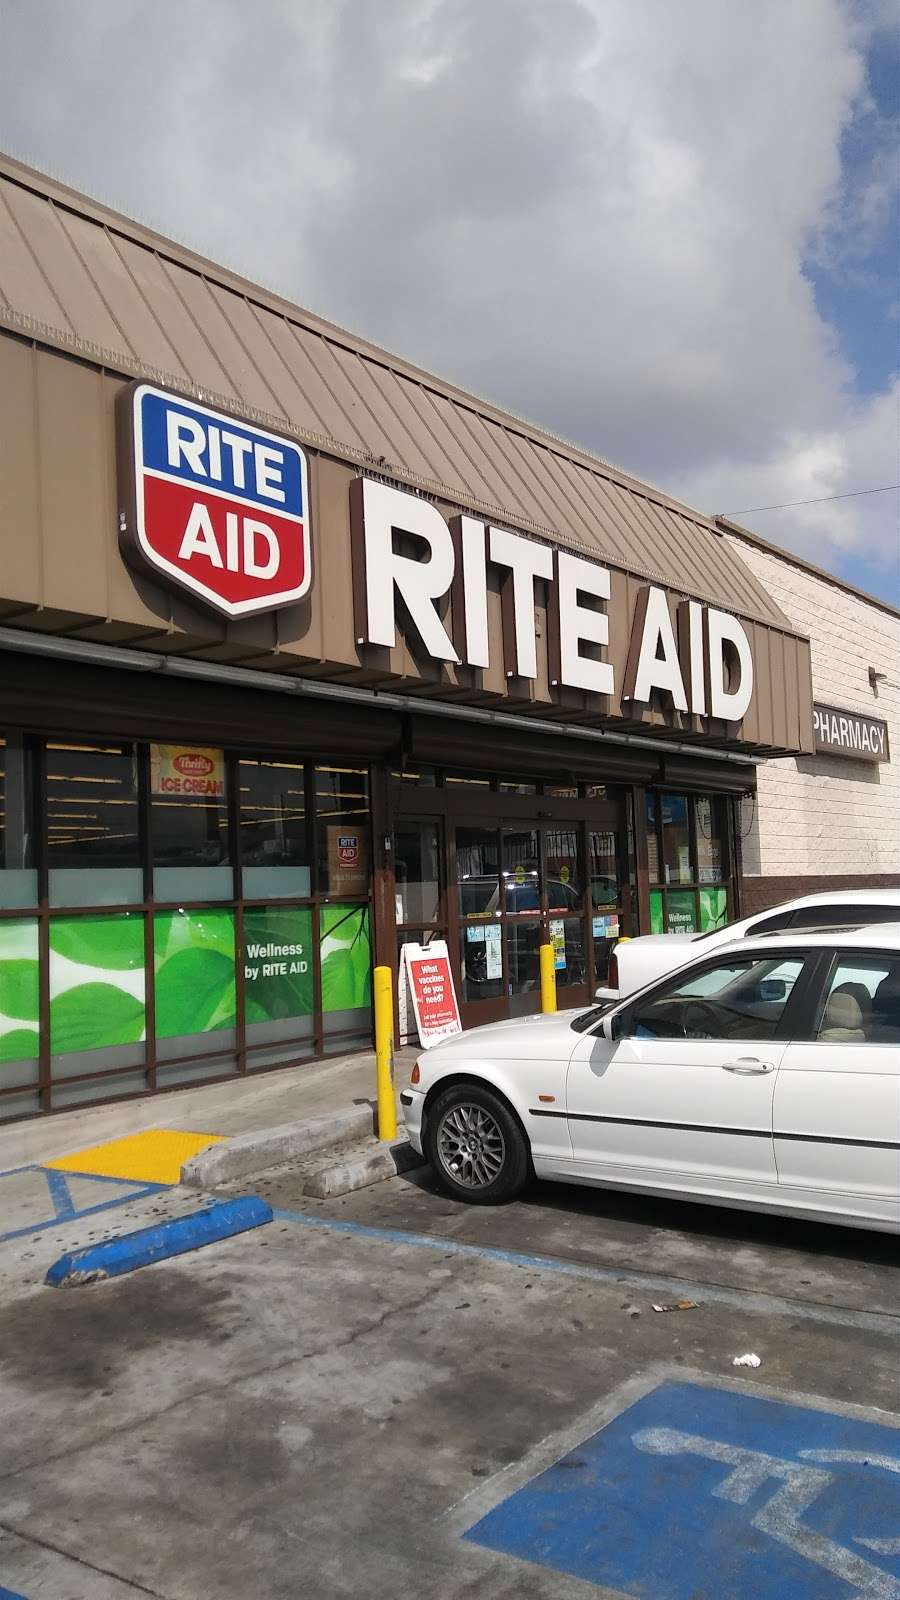 Rite Aid, 7 S Vermont Ave, Los Angeles, CA 7, USA